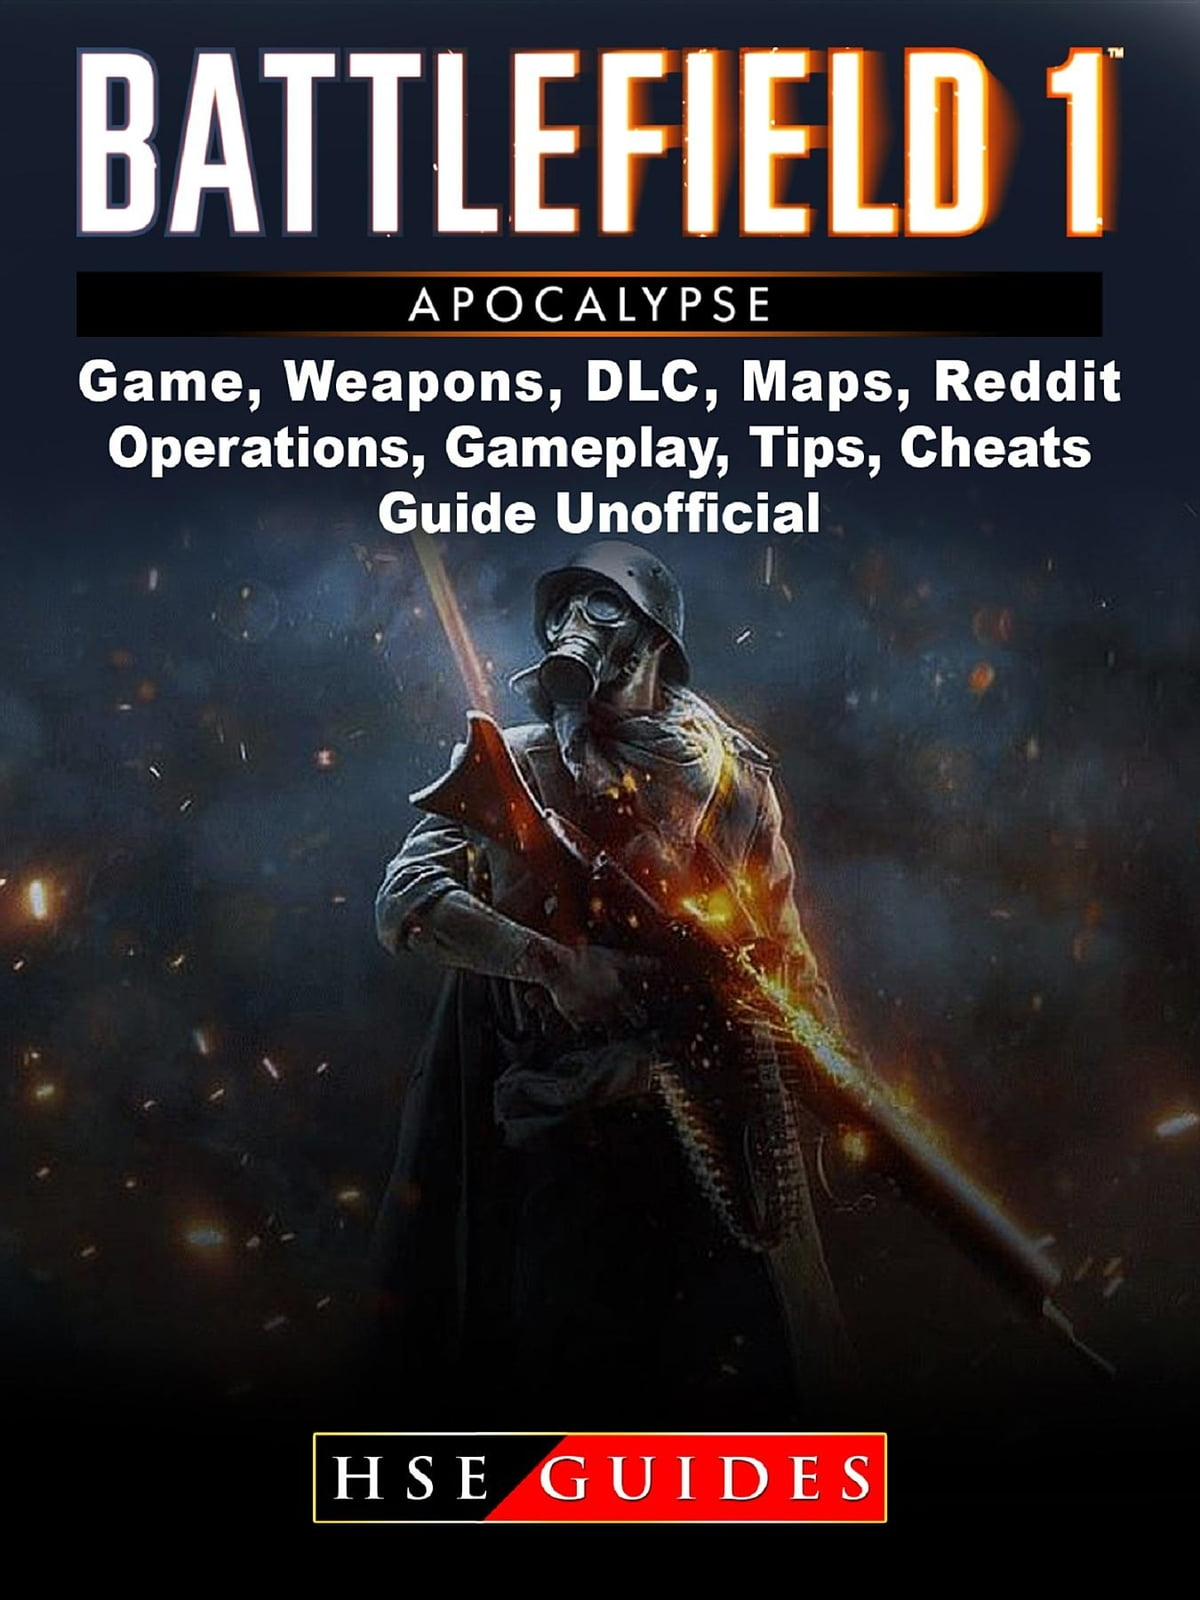 「Battlefield 1 Turning Tides Game, Maps, DLC, Weapons, Gameplay, Tips,  Strategies, Cheats, Guide Unofficial」(HSE Guides - 9781387707799)| 楽天Kobo